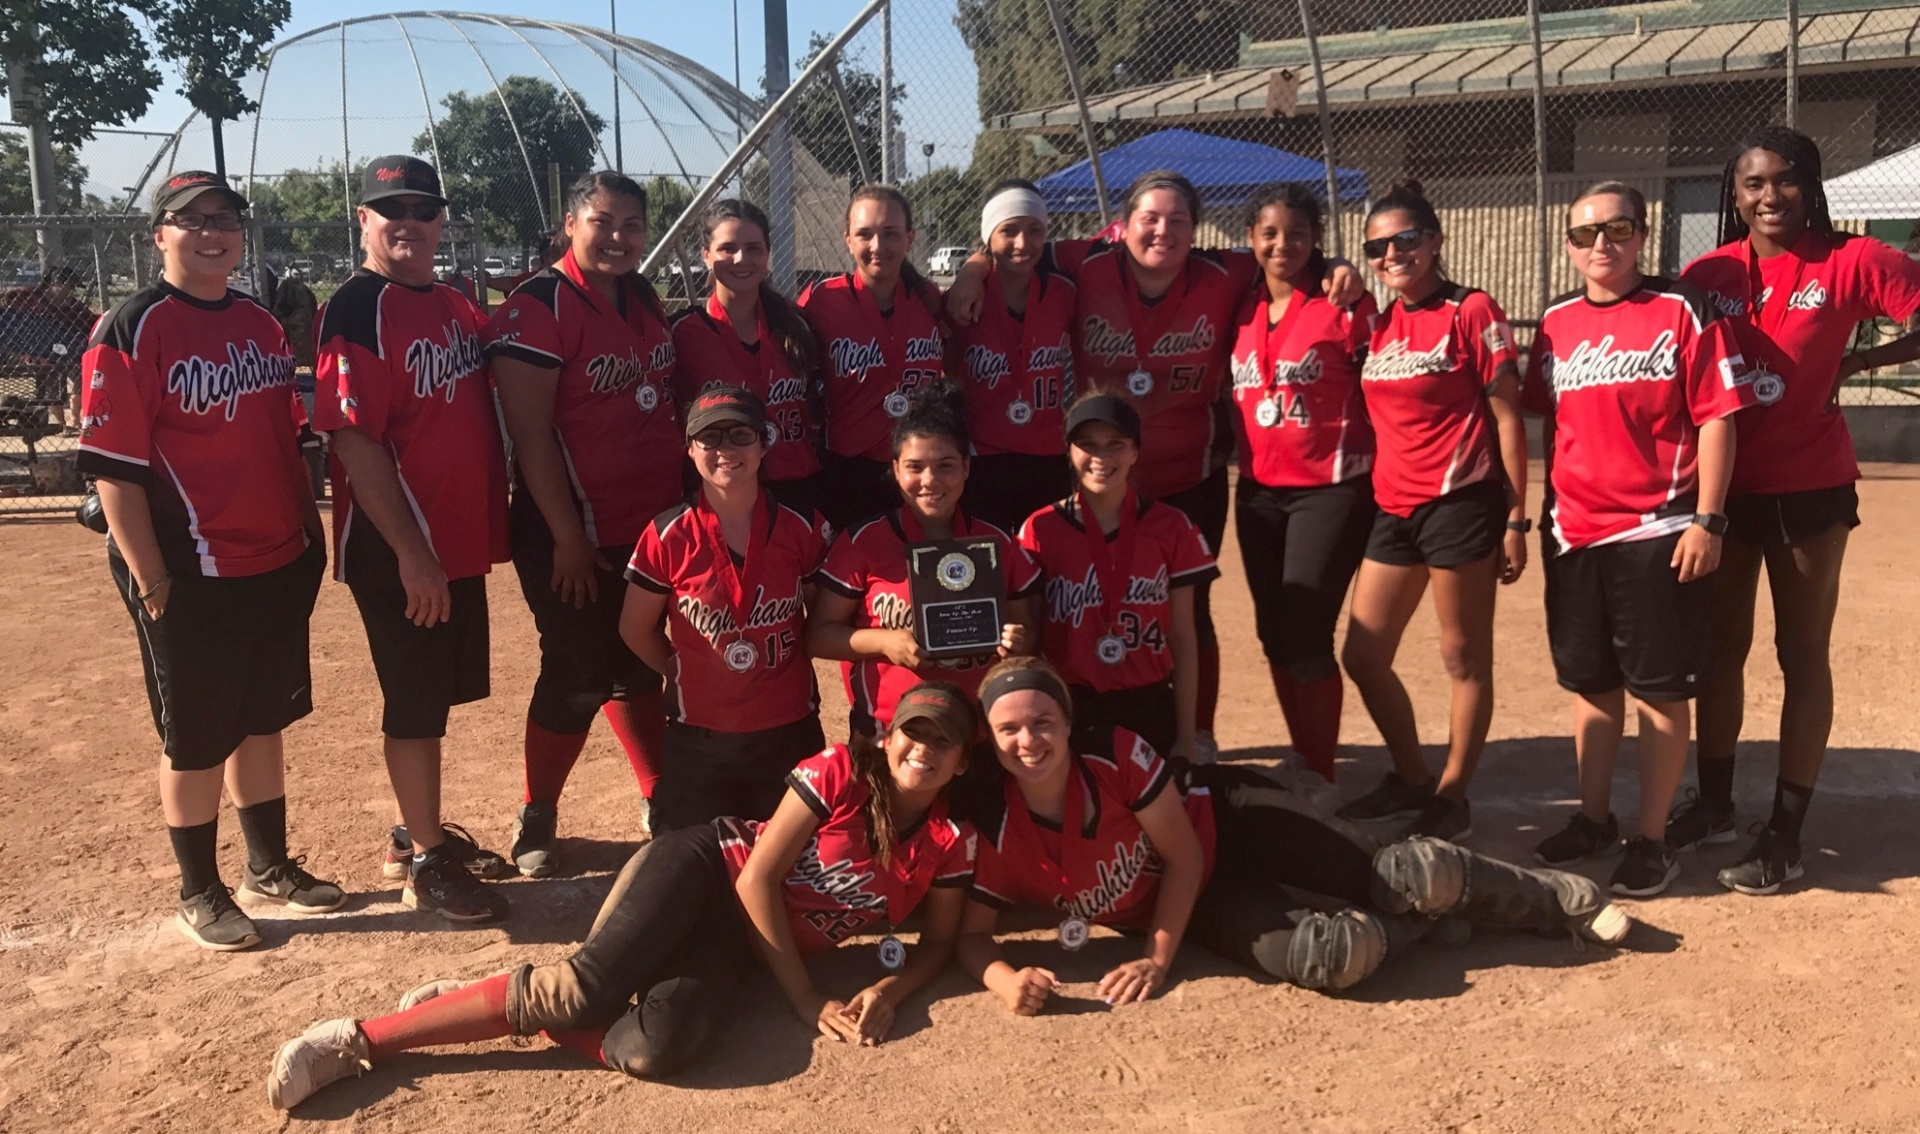 2nd Place - Nighthawks 18u